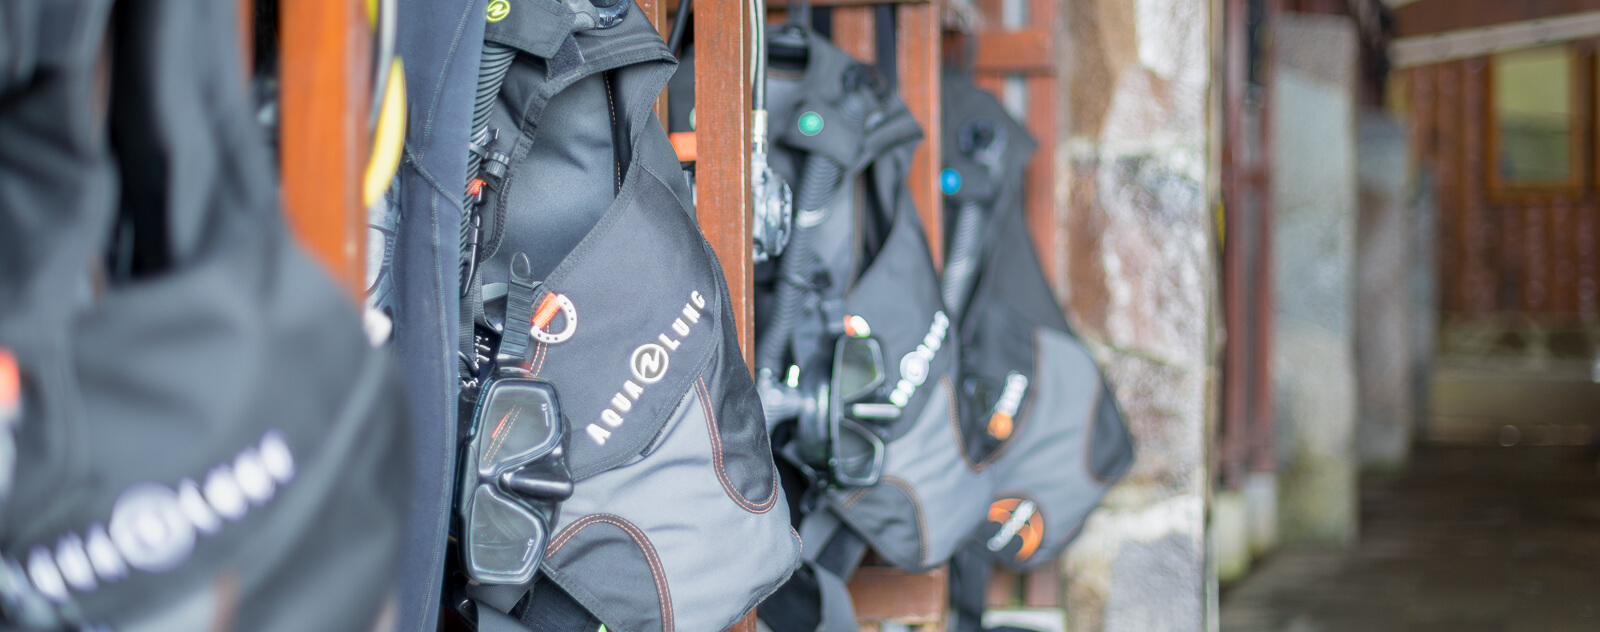 Lembeh Resort Diving equipment lockers